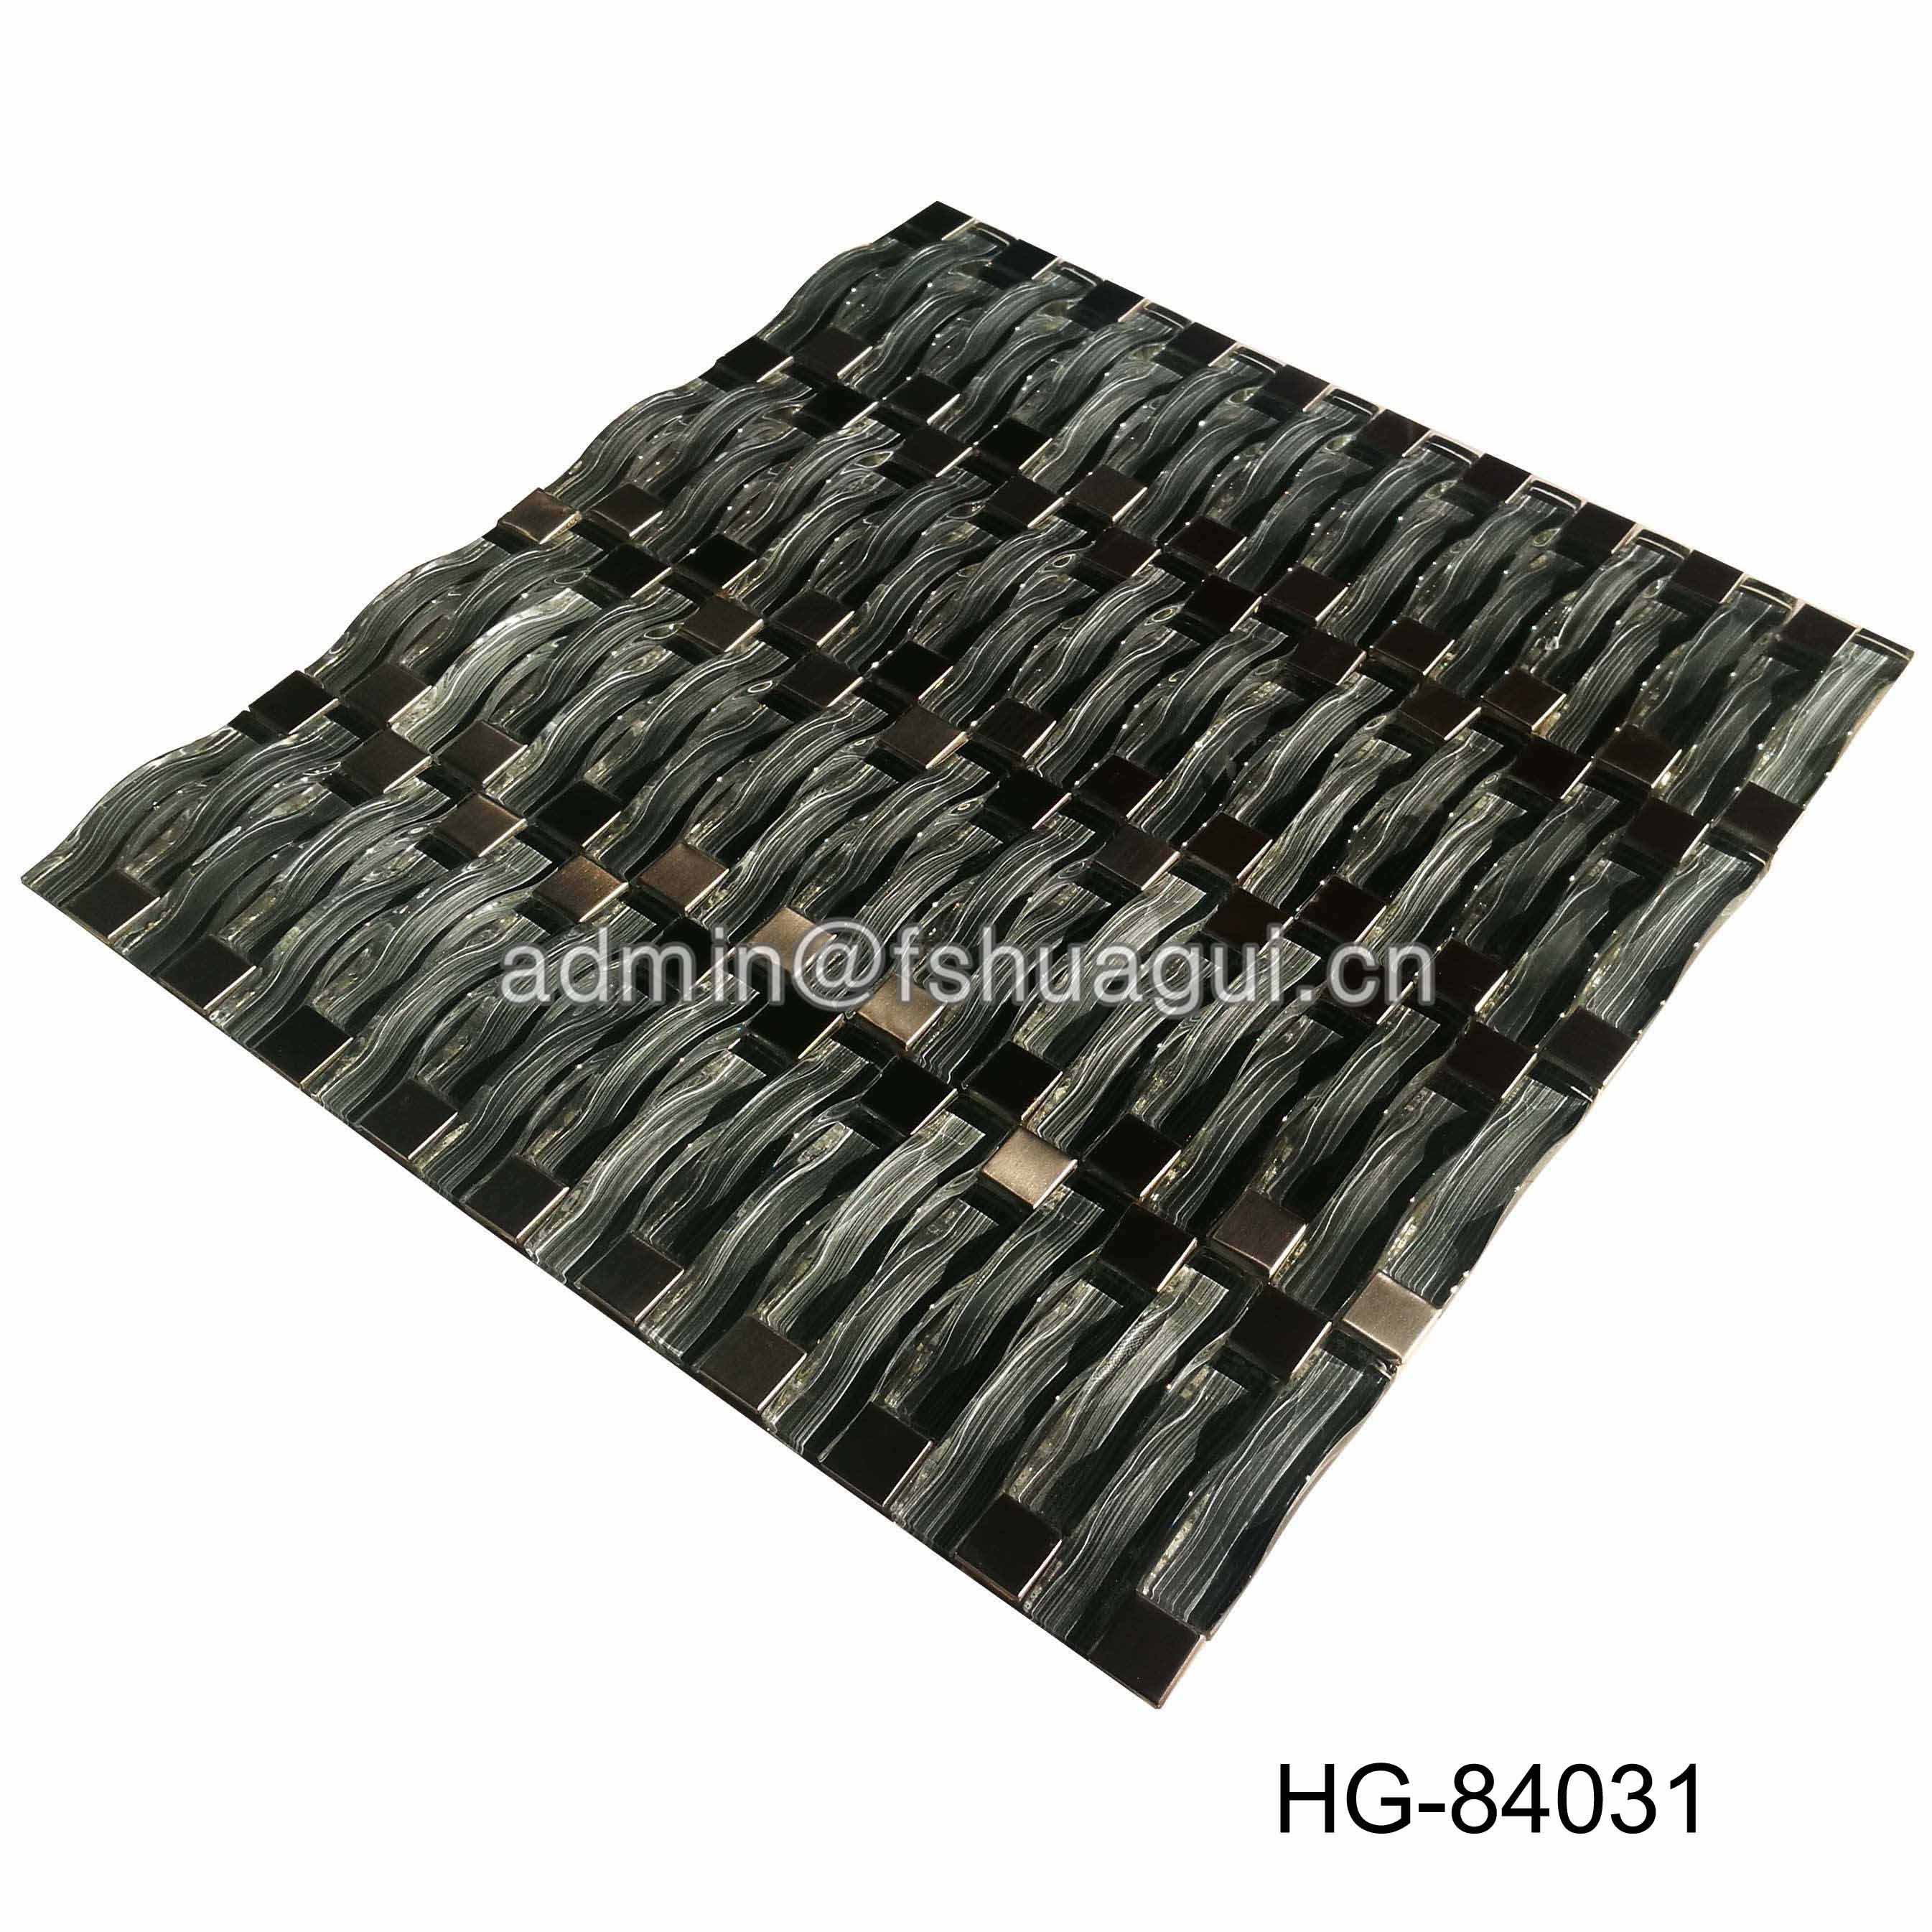 Huagui Foshan Manufacturer Antique  Grey Glass Mosaic Tile HG-84031 GLASS MOSAIC TILE image37